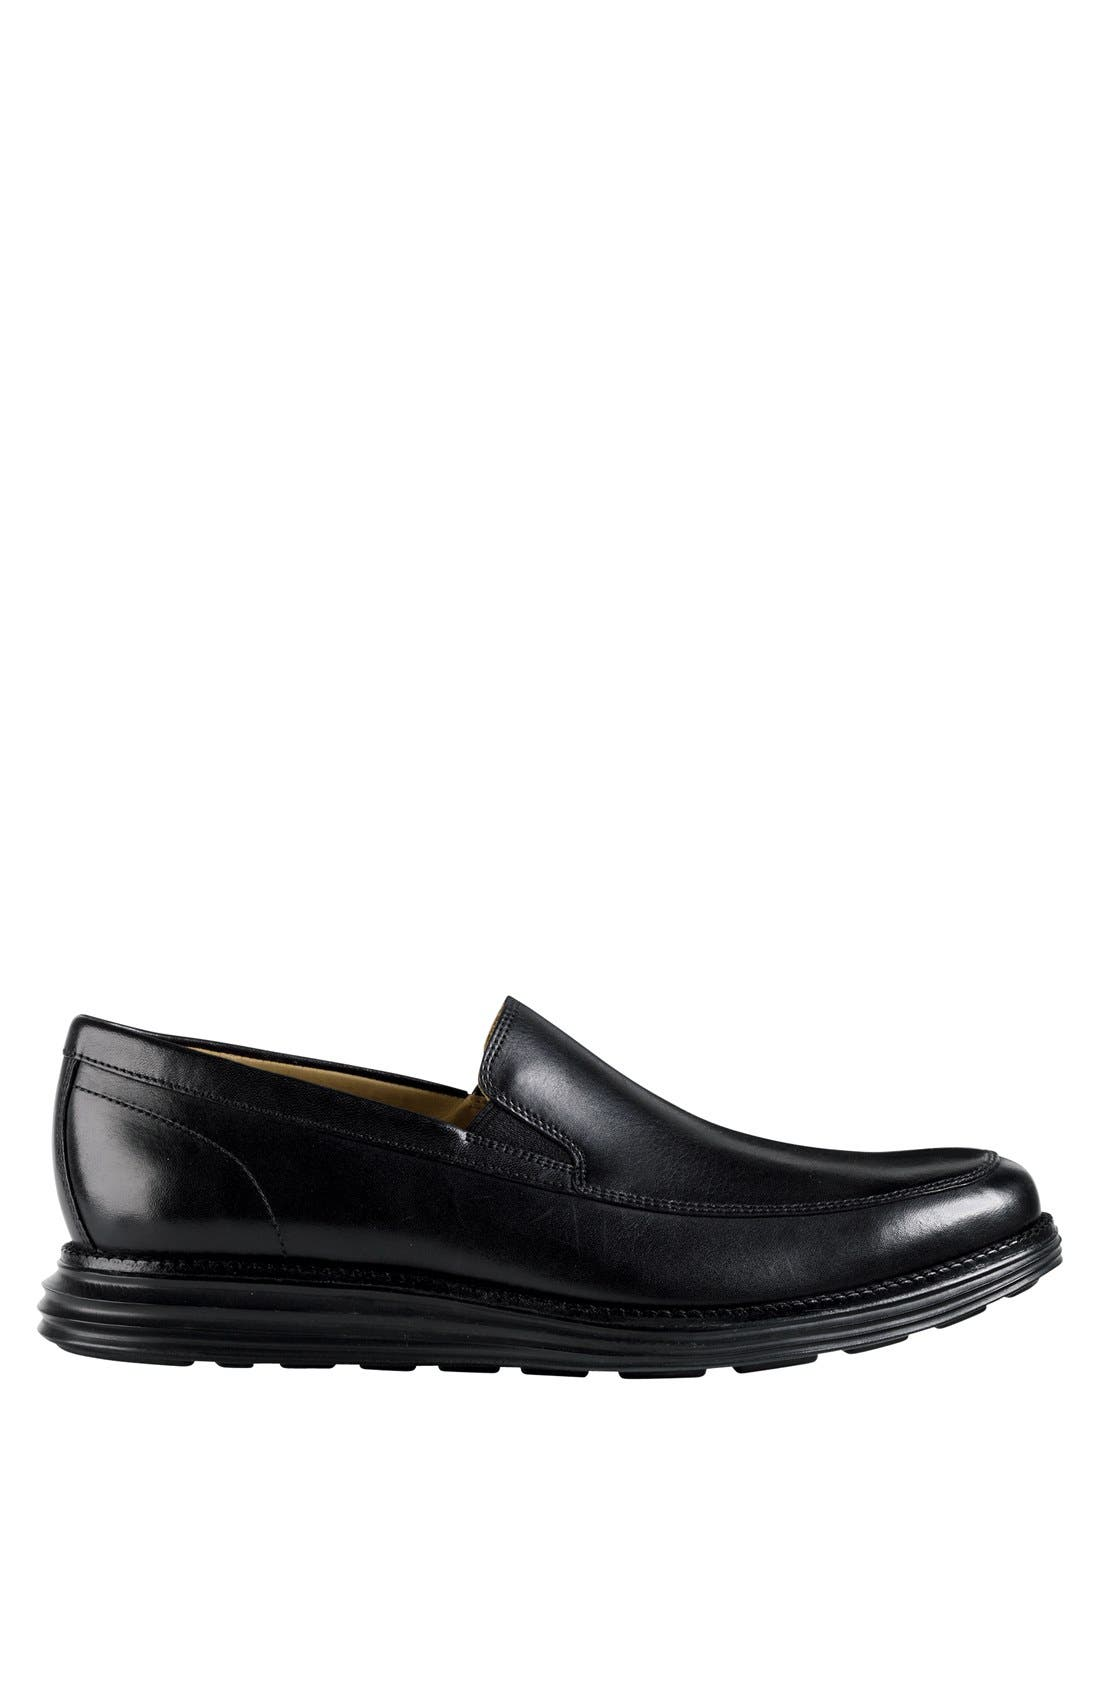 COLE HAAN,                             'LunarGrand' Apron Toe Loafer,                             Alternate thumbnail 5, color,                             001